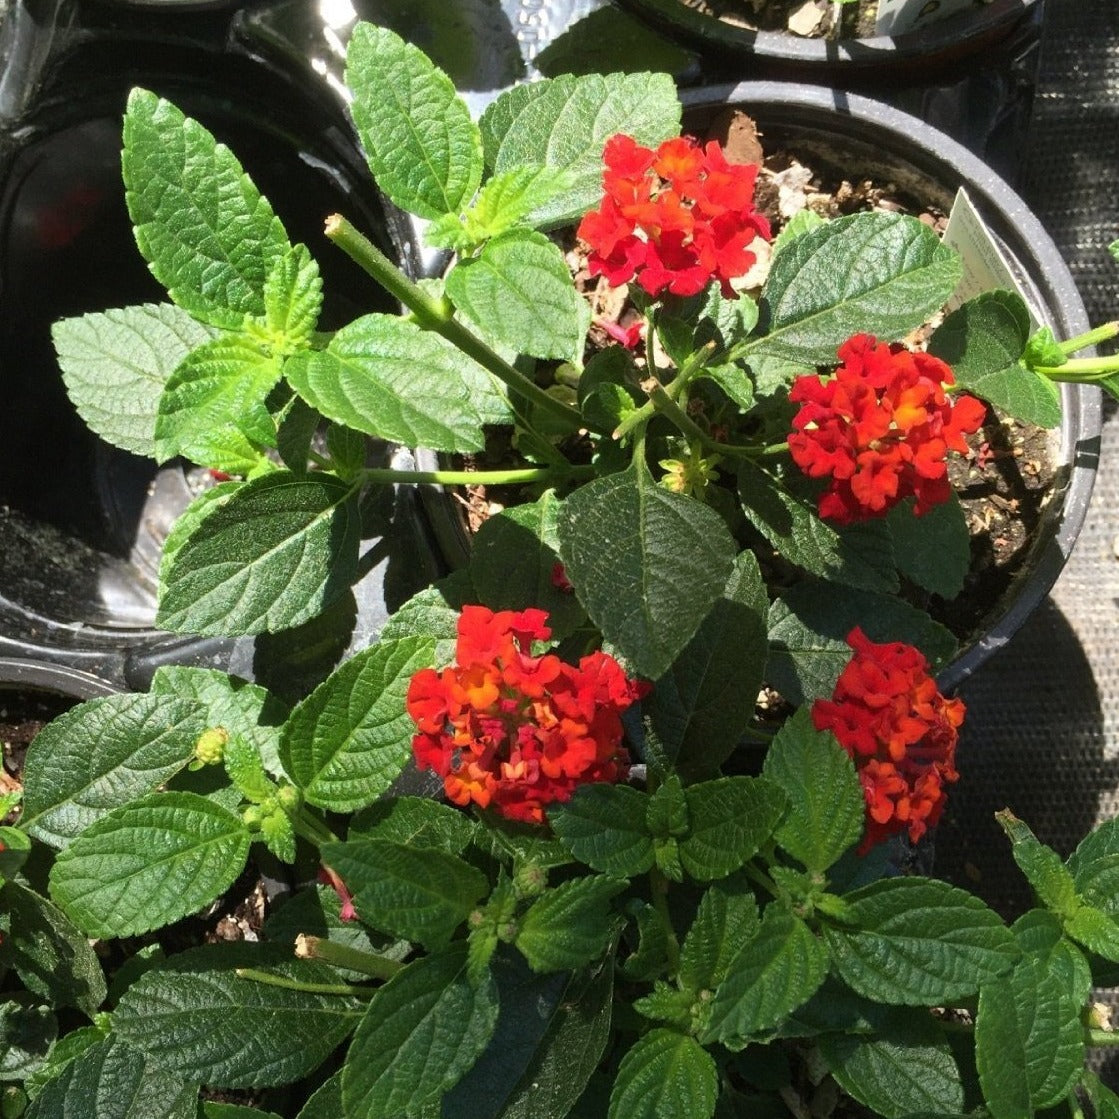 Lantana Dallas Red' (Groundcover) - Brilliant Blooms of Fiery Red, Yellow and Orange Flowers. Constant Bloomers